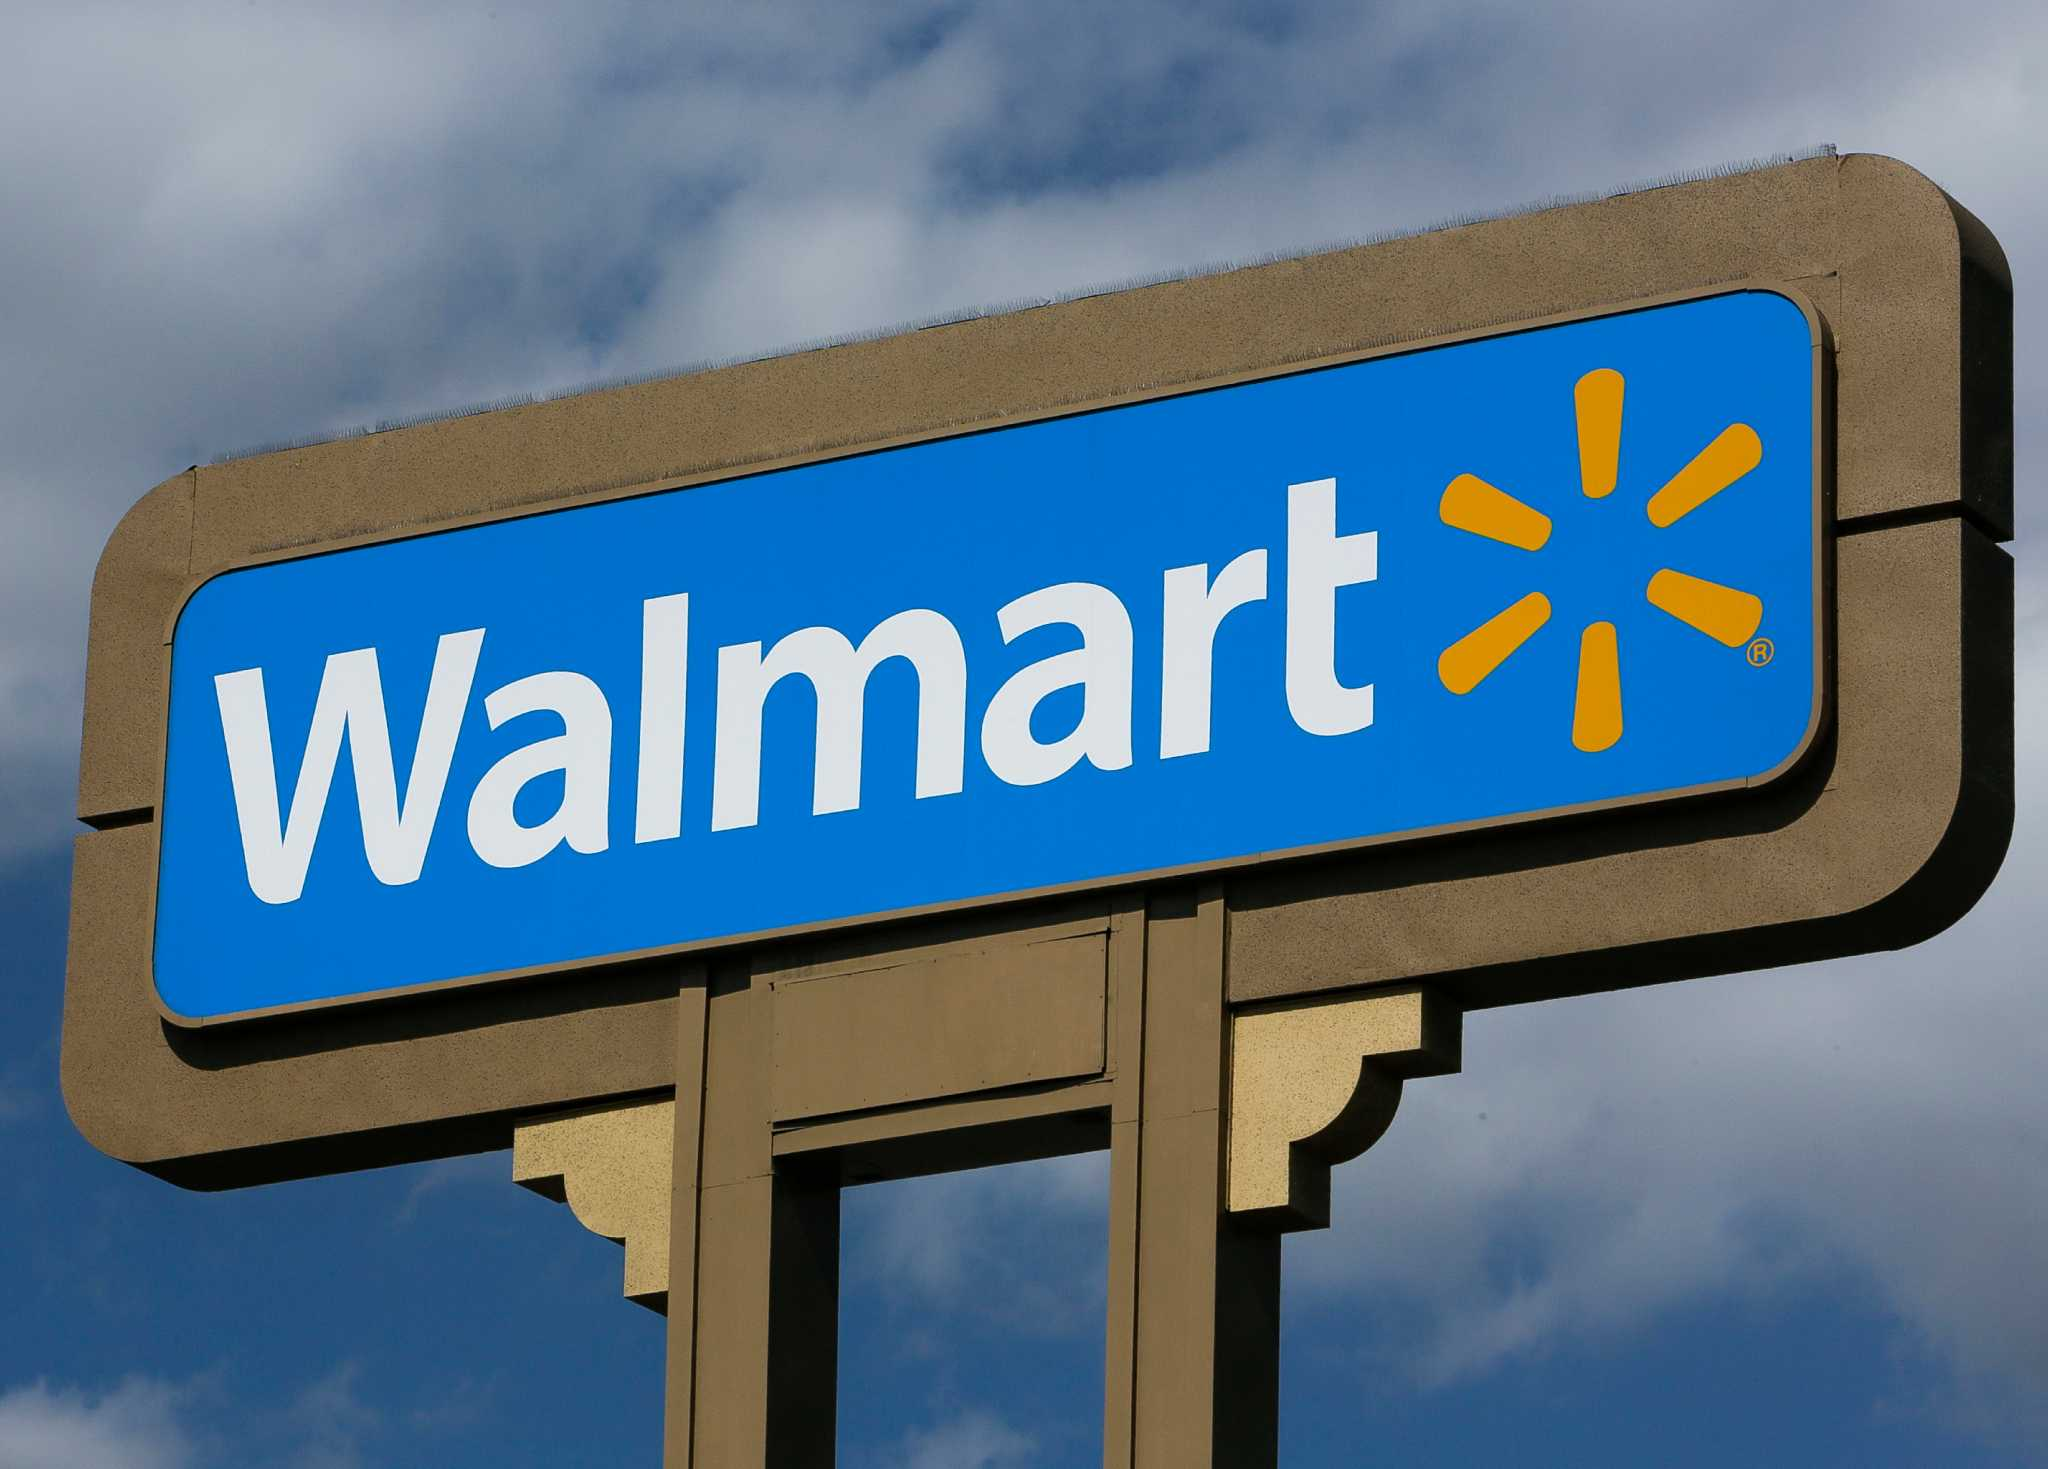 walmart to close stores in houston others across texas walmart to close 2 stores in houston 27 others across texas houston chronicle